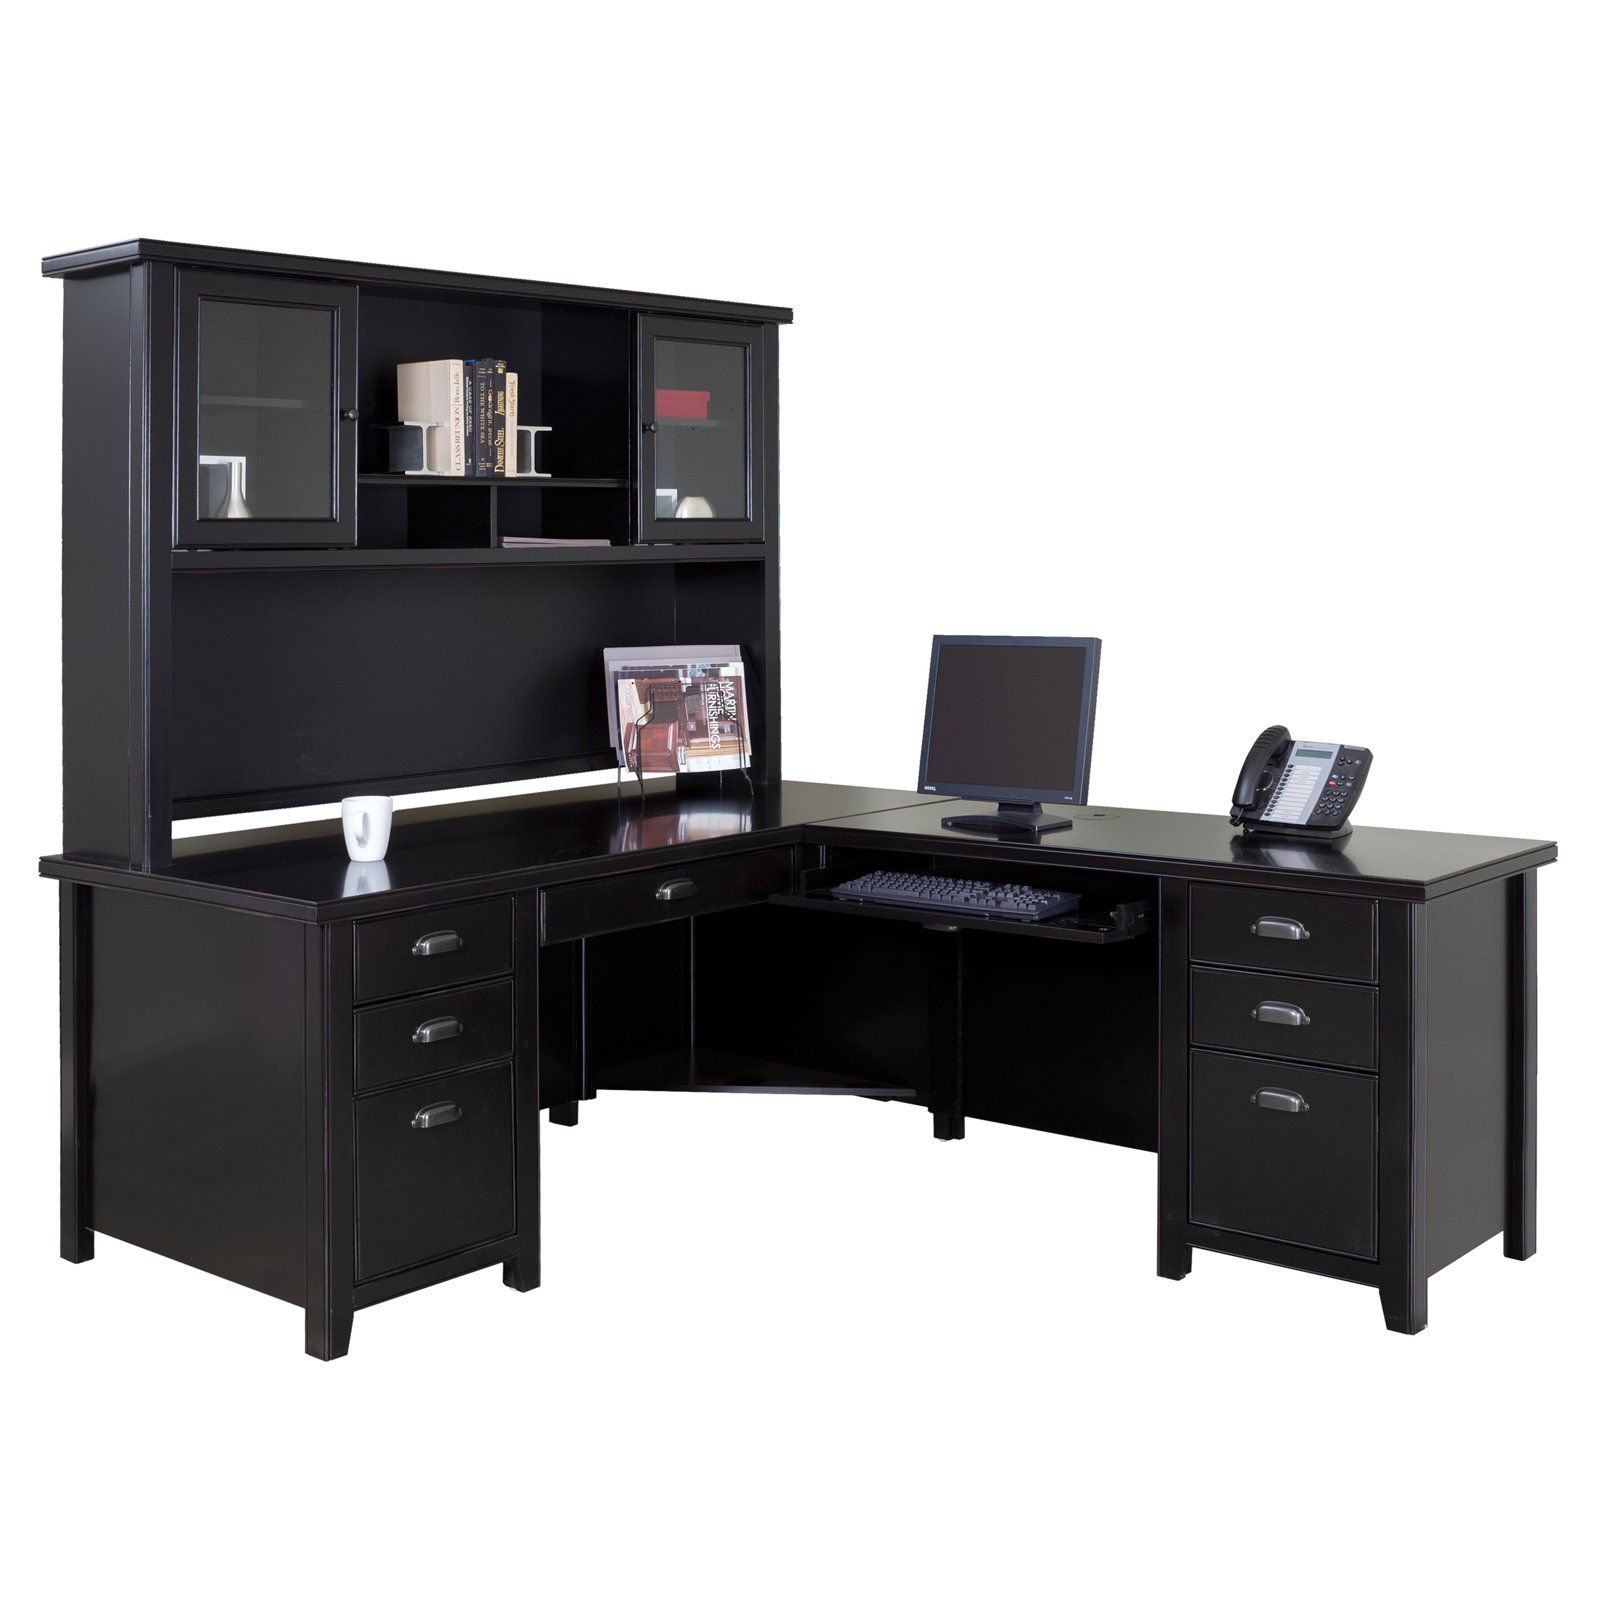 optional kathy home loft desk and executive black it hutch ireland have martin by l drawers shaped computer with hayneedle to tribeca pin